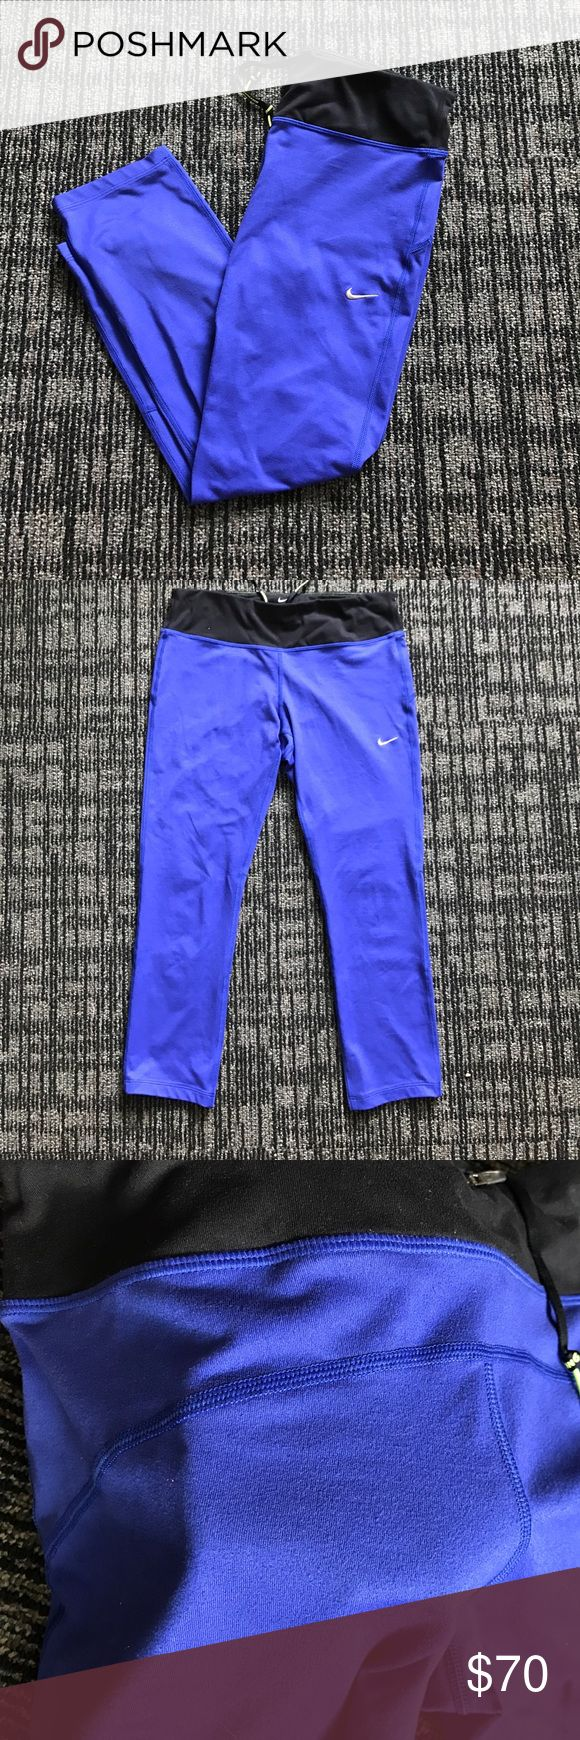 Royal Blue Cropped Nike Tights Nike royal blue cropped leggings. Only small amounts of wear around the back but they are in really great condition Nike Pants Leggings